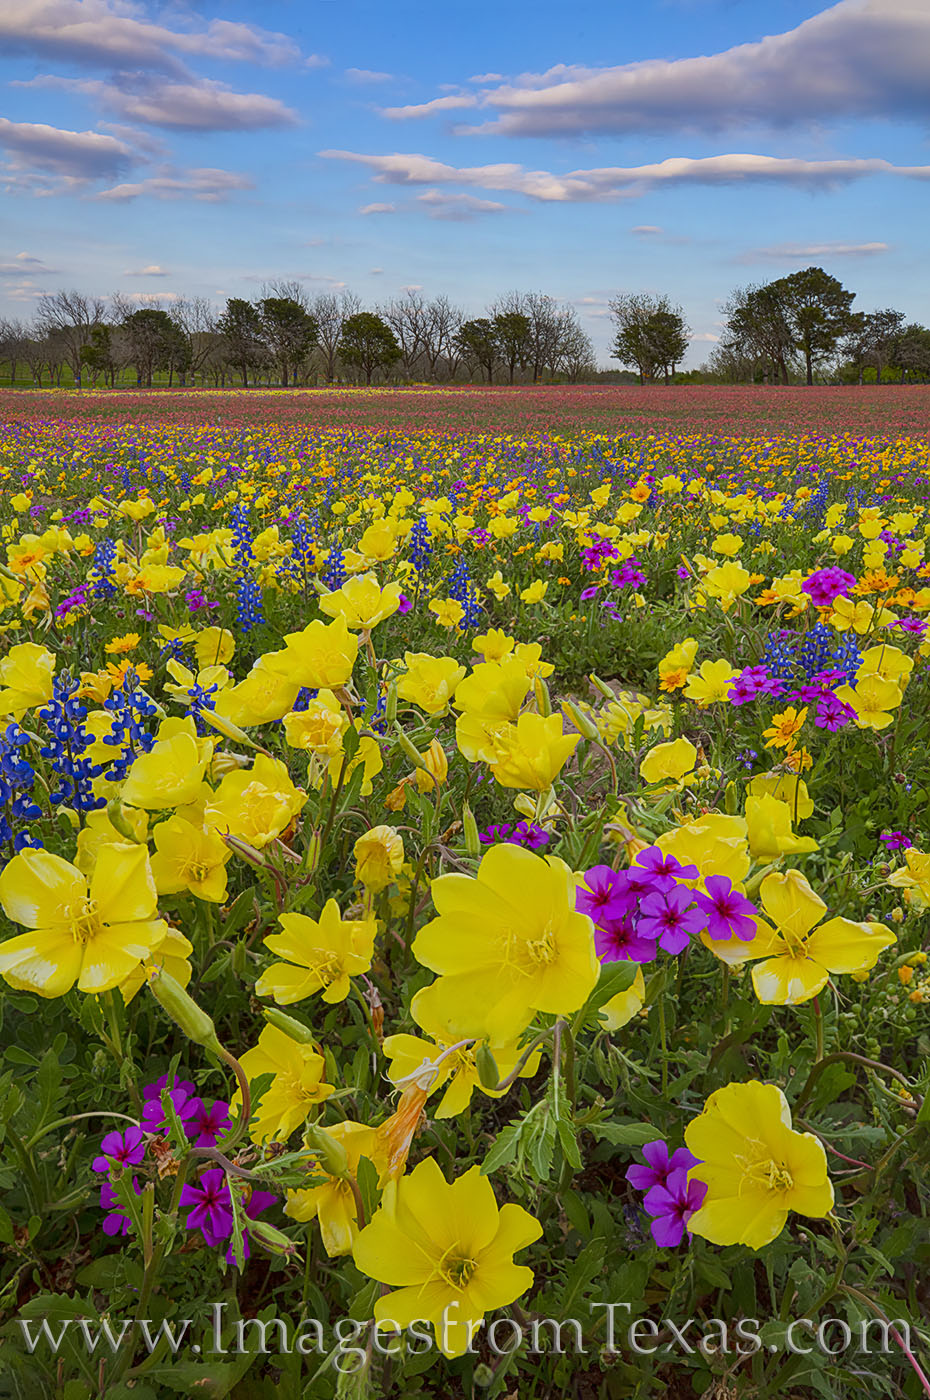 Colorful wildflowers - Missouri primrose and an assortment of other colorful blooms - lead up to a lead to a treeline on the...